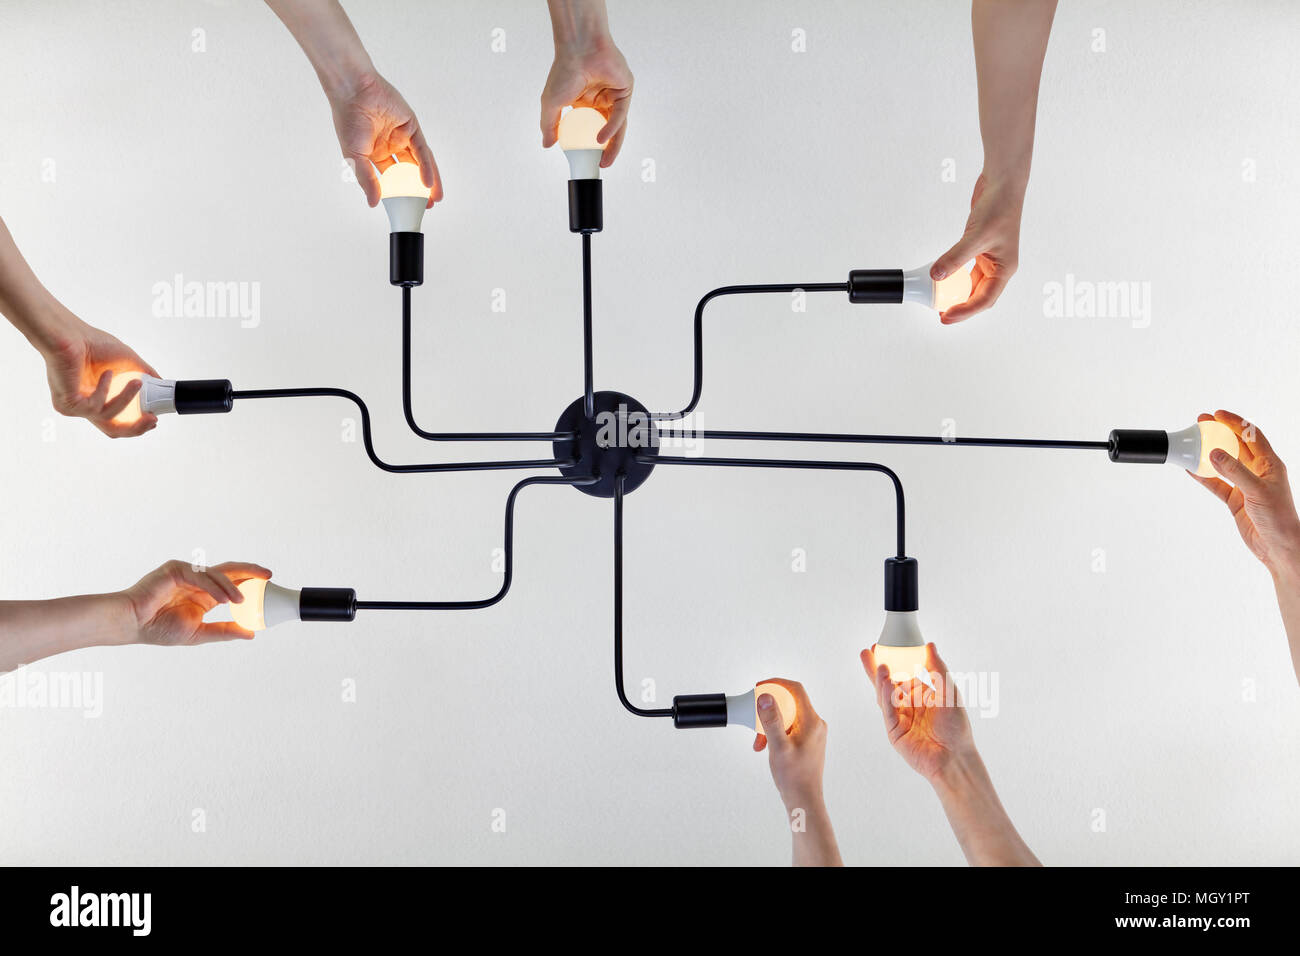 Concept of teamwork, or shared purpose on example of united actions when replacing LED lamps in a ceiling lighting. - Stock Image